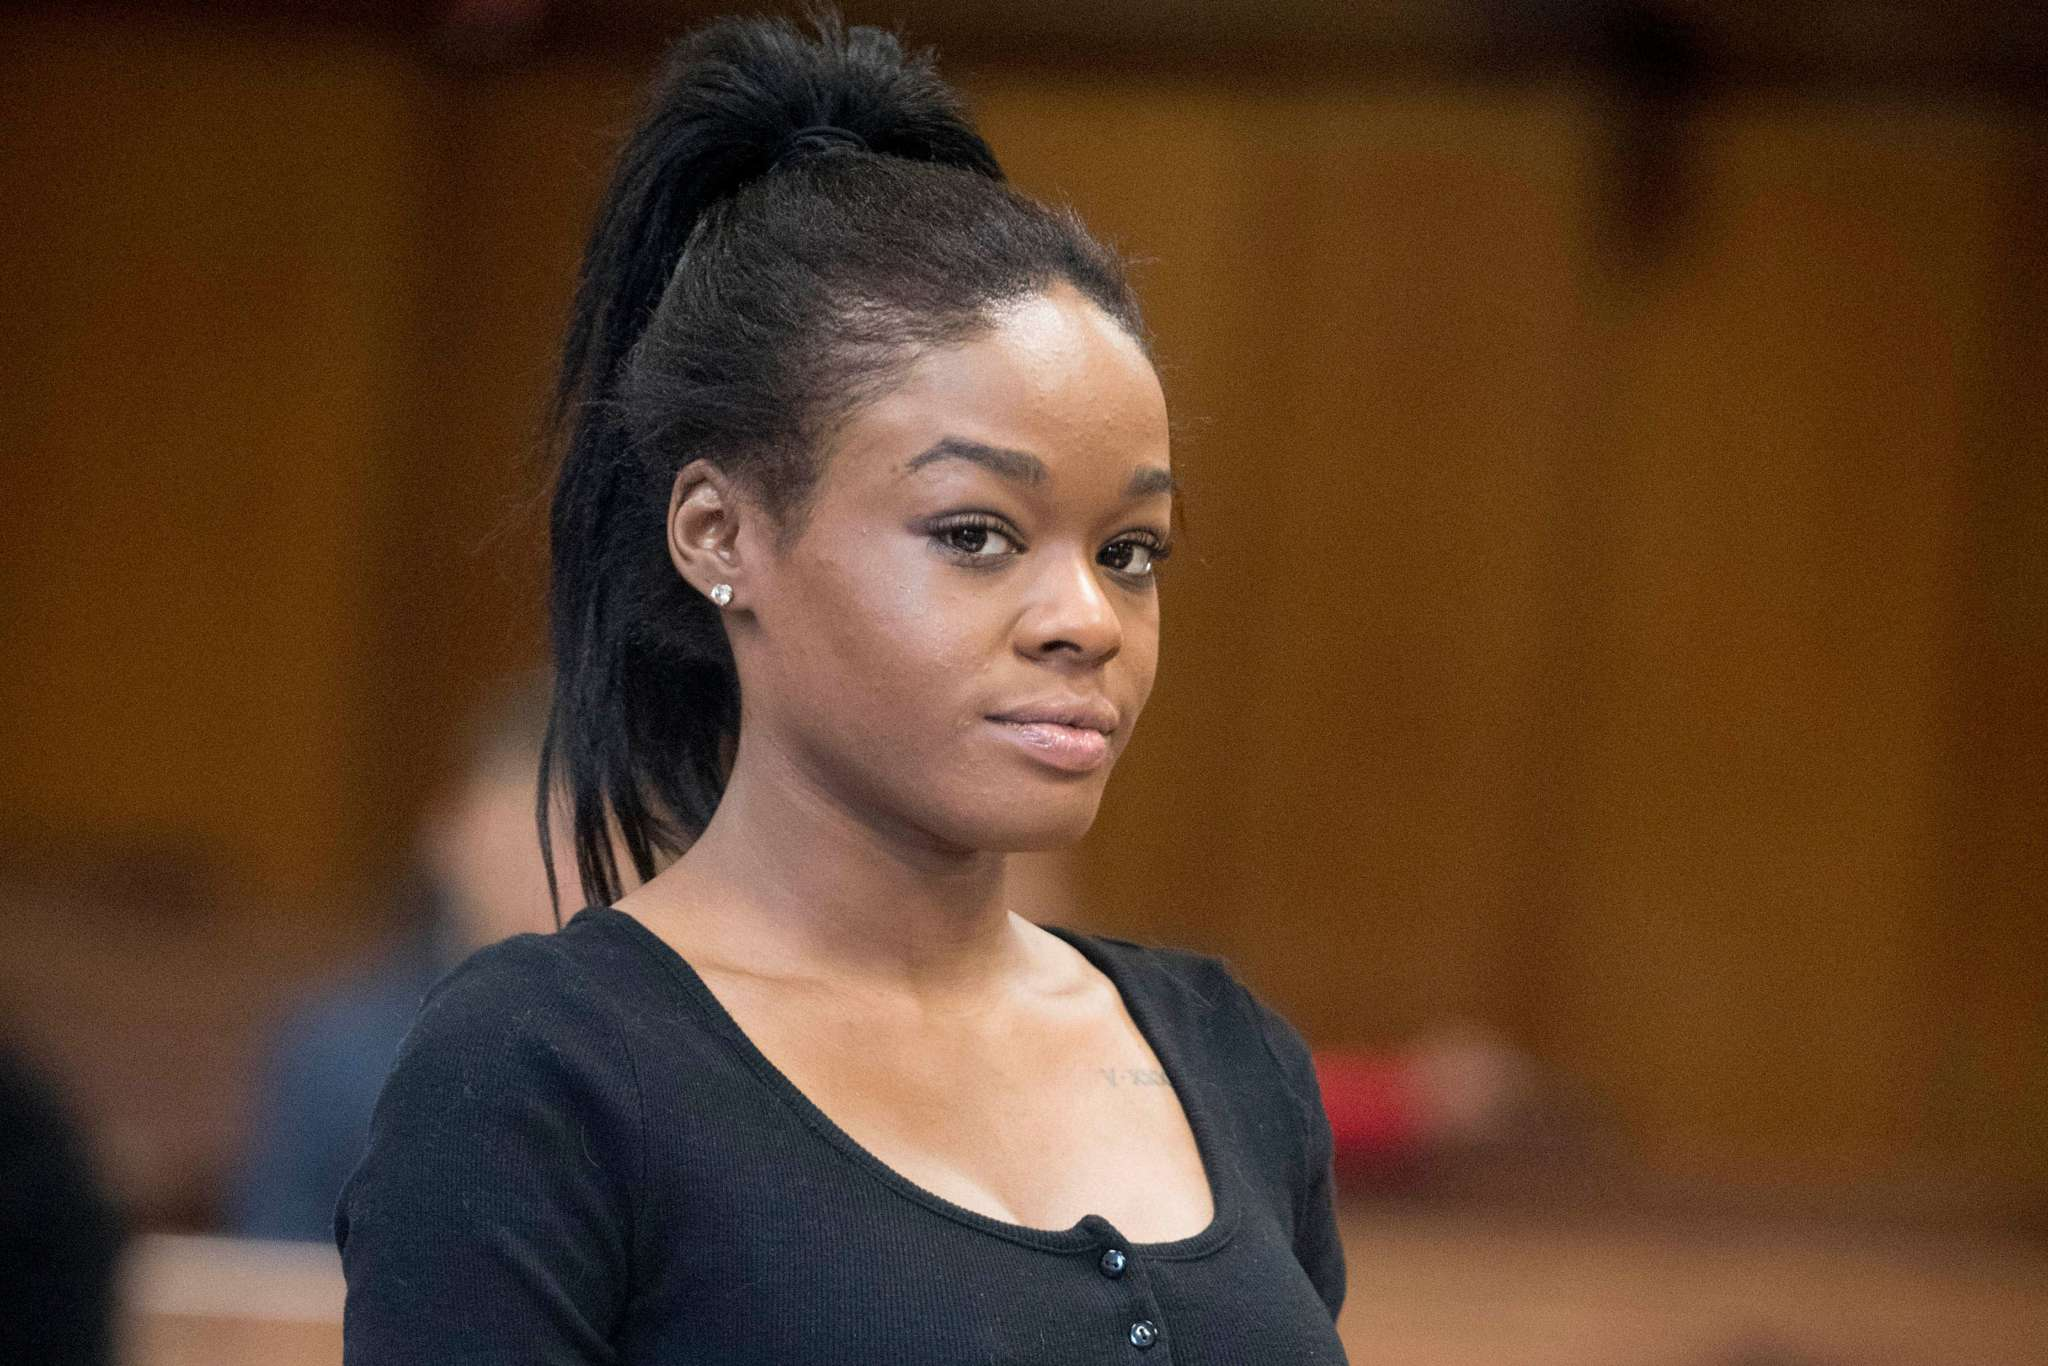 Azealia Banks Posts Cryptic Messages About A Potential Suicide Attempt